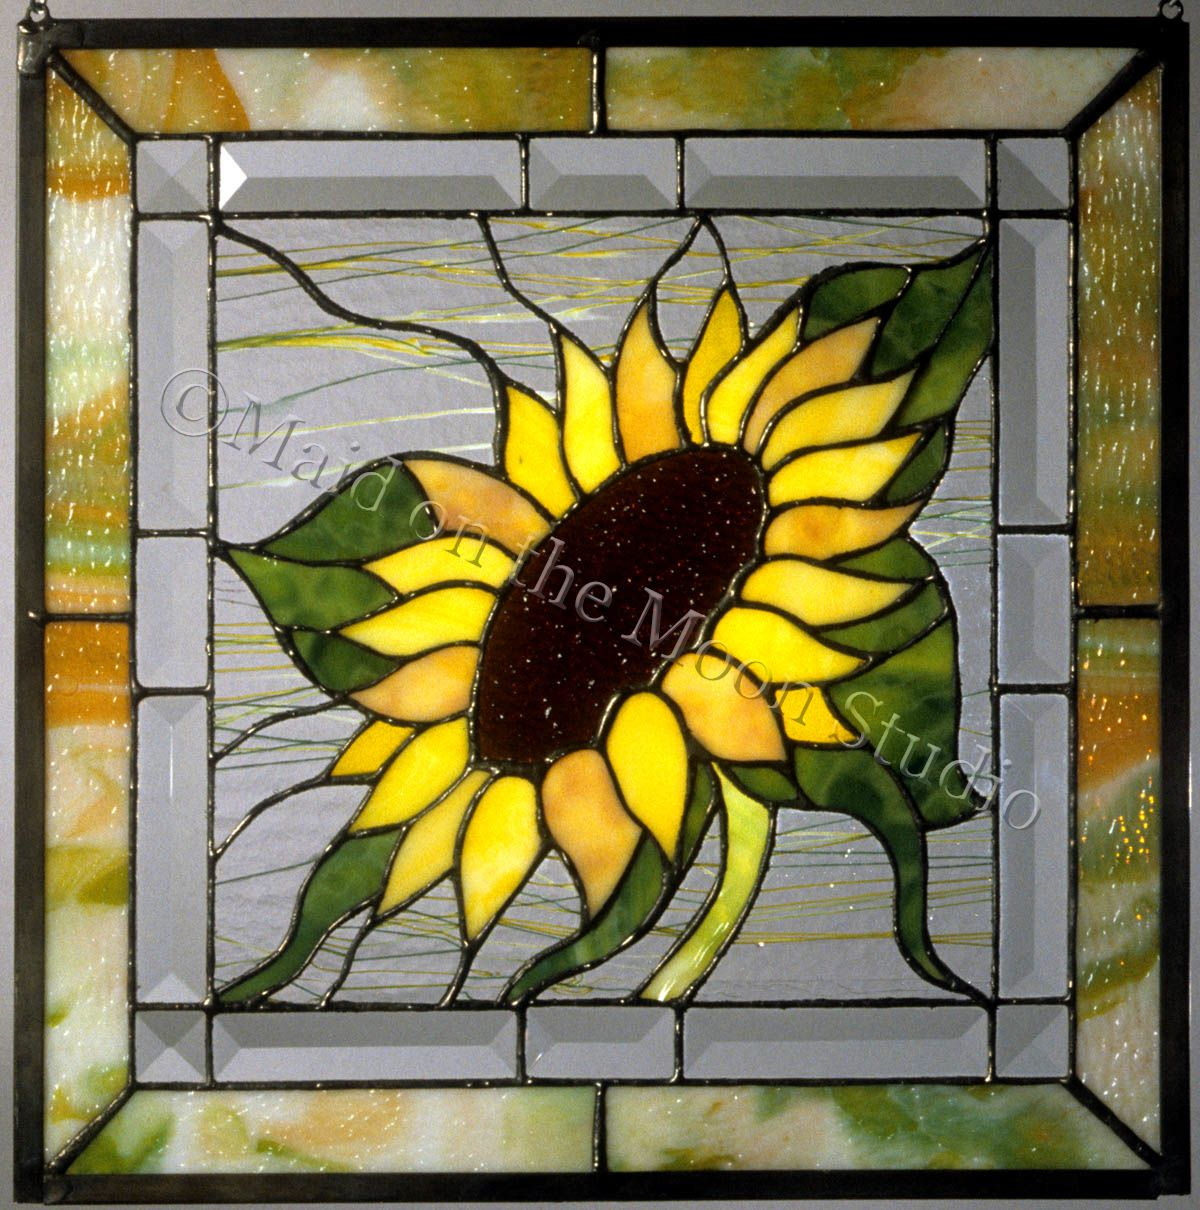 Full Face Sunflower Stained Glass Panel By Maid On The Moon Studio Stained Glass Diy Stained